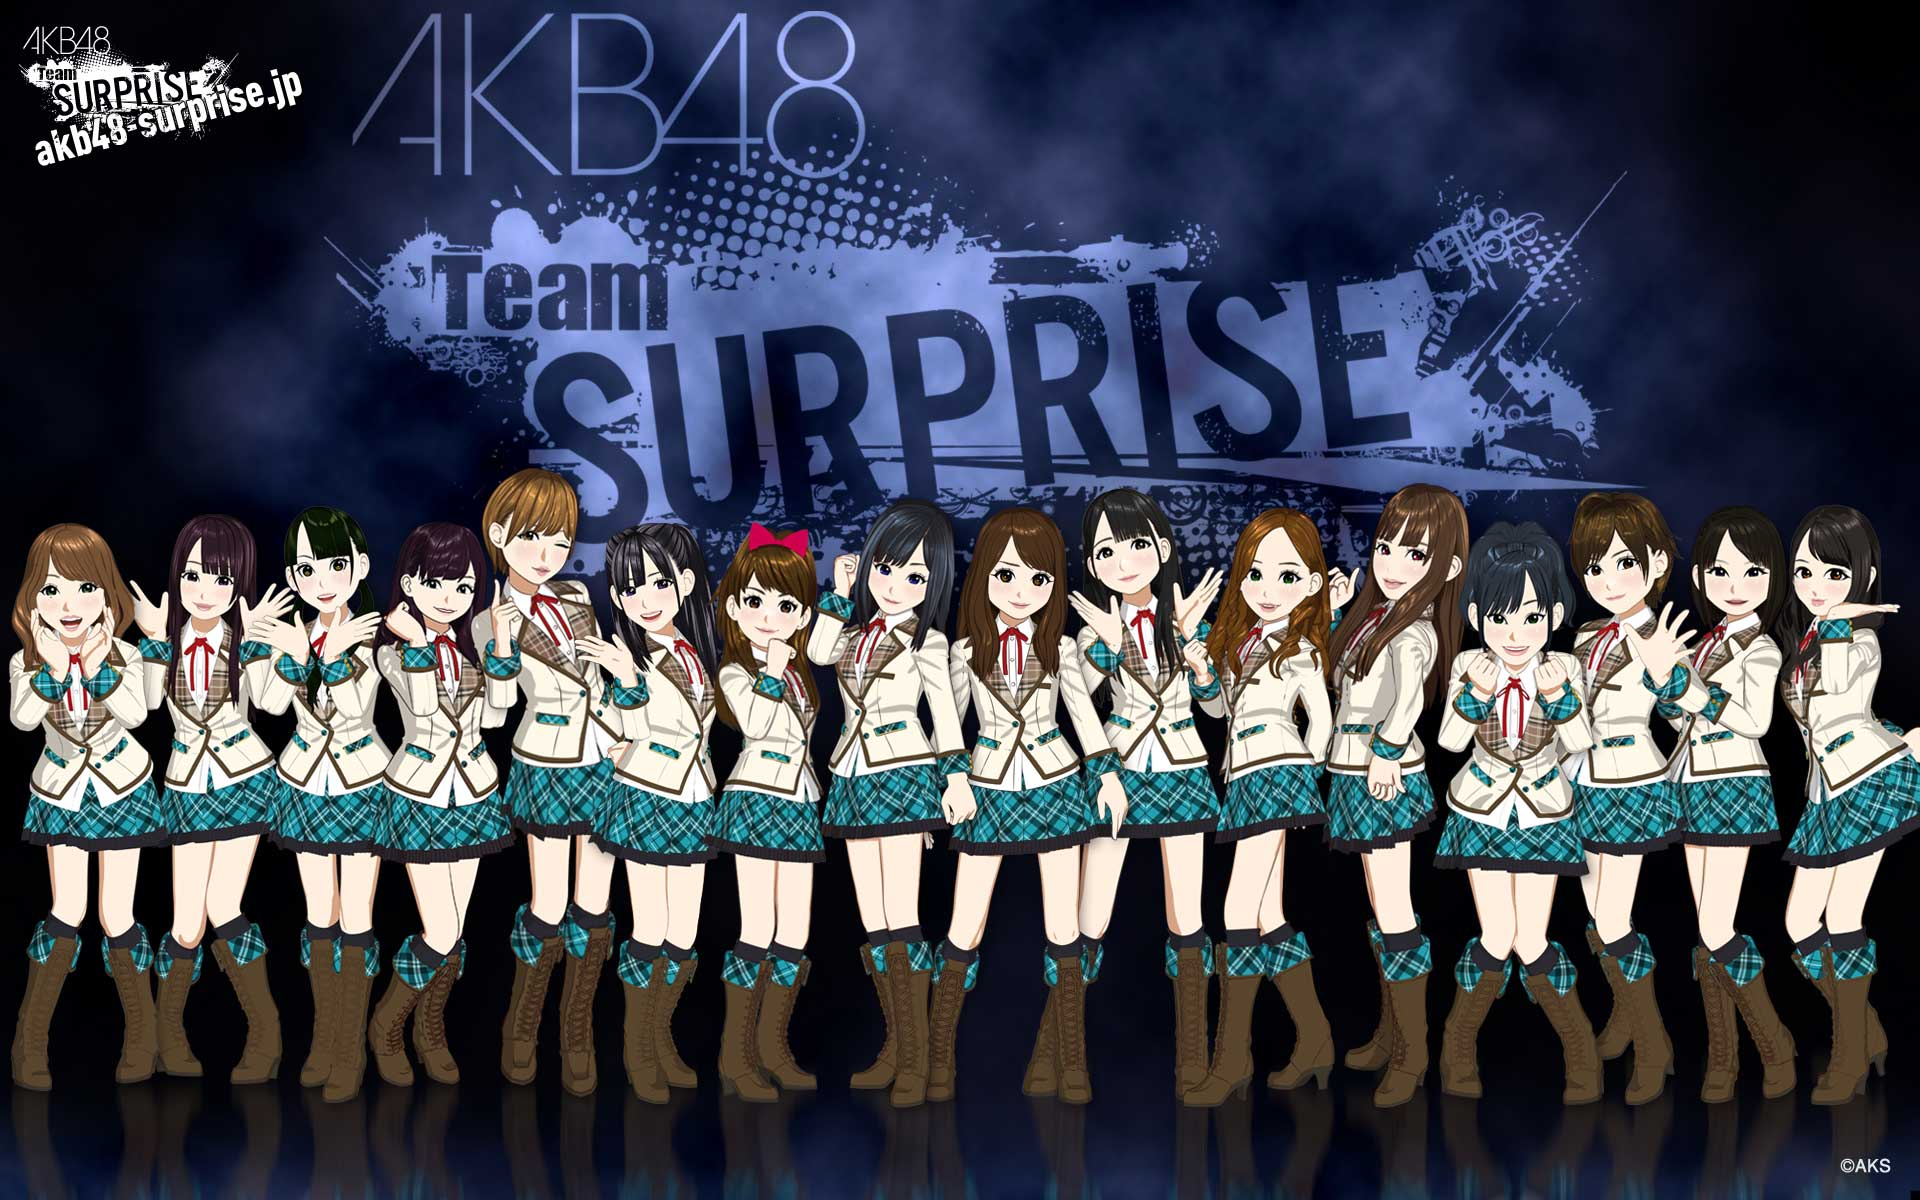 Cast your vote in making the next AKB48 Team Surprise song! | akbzine